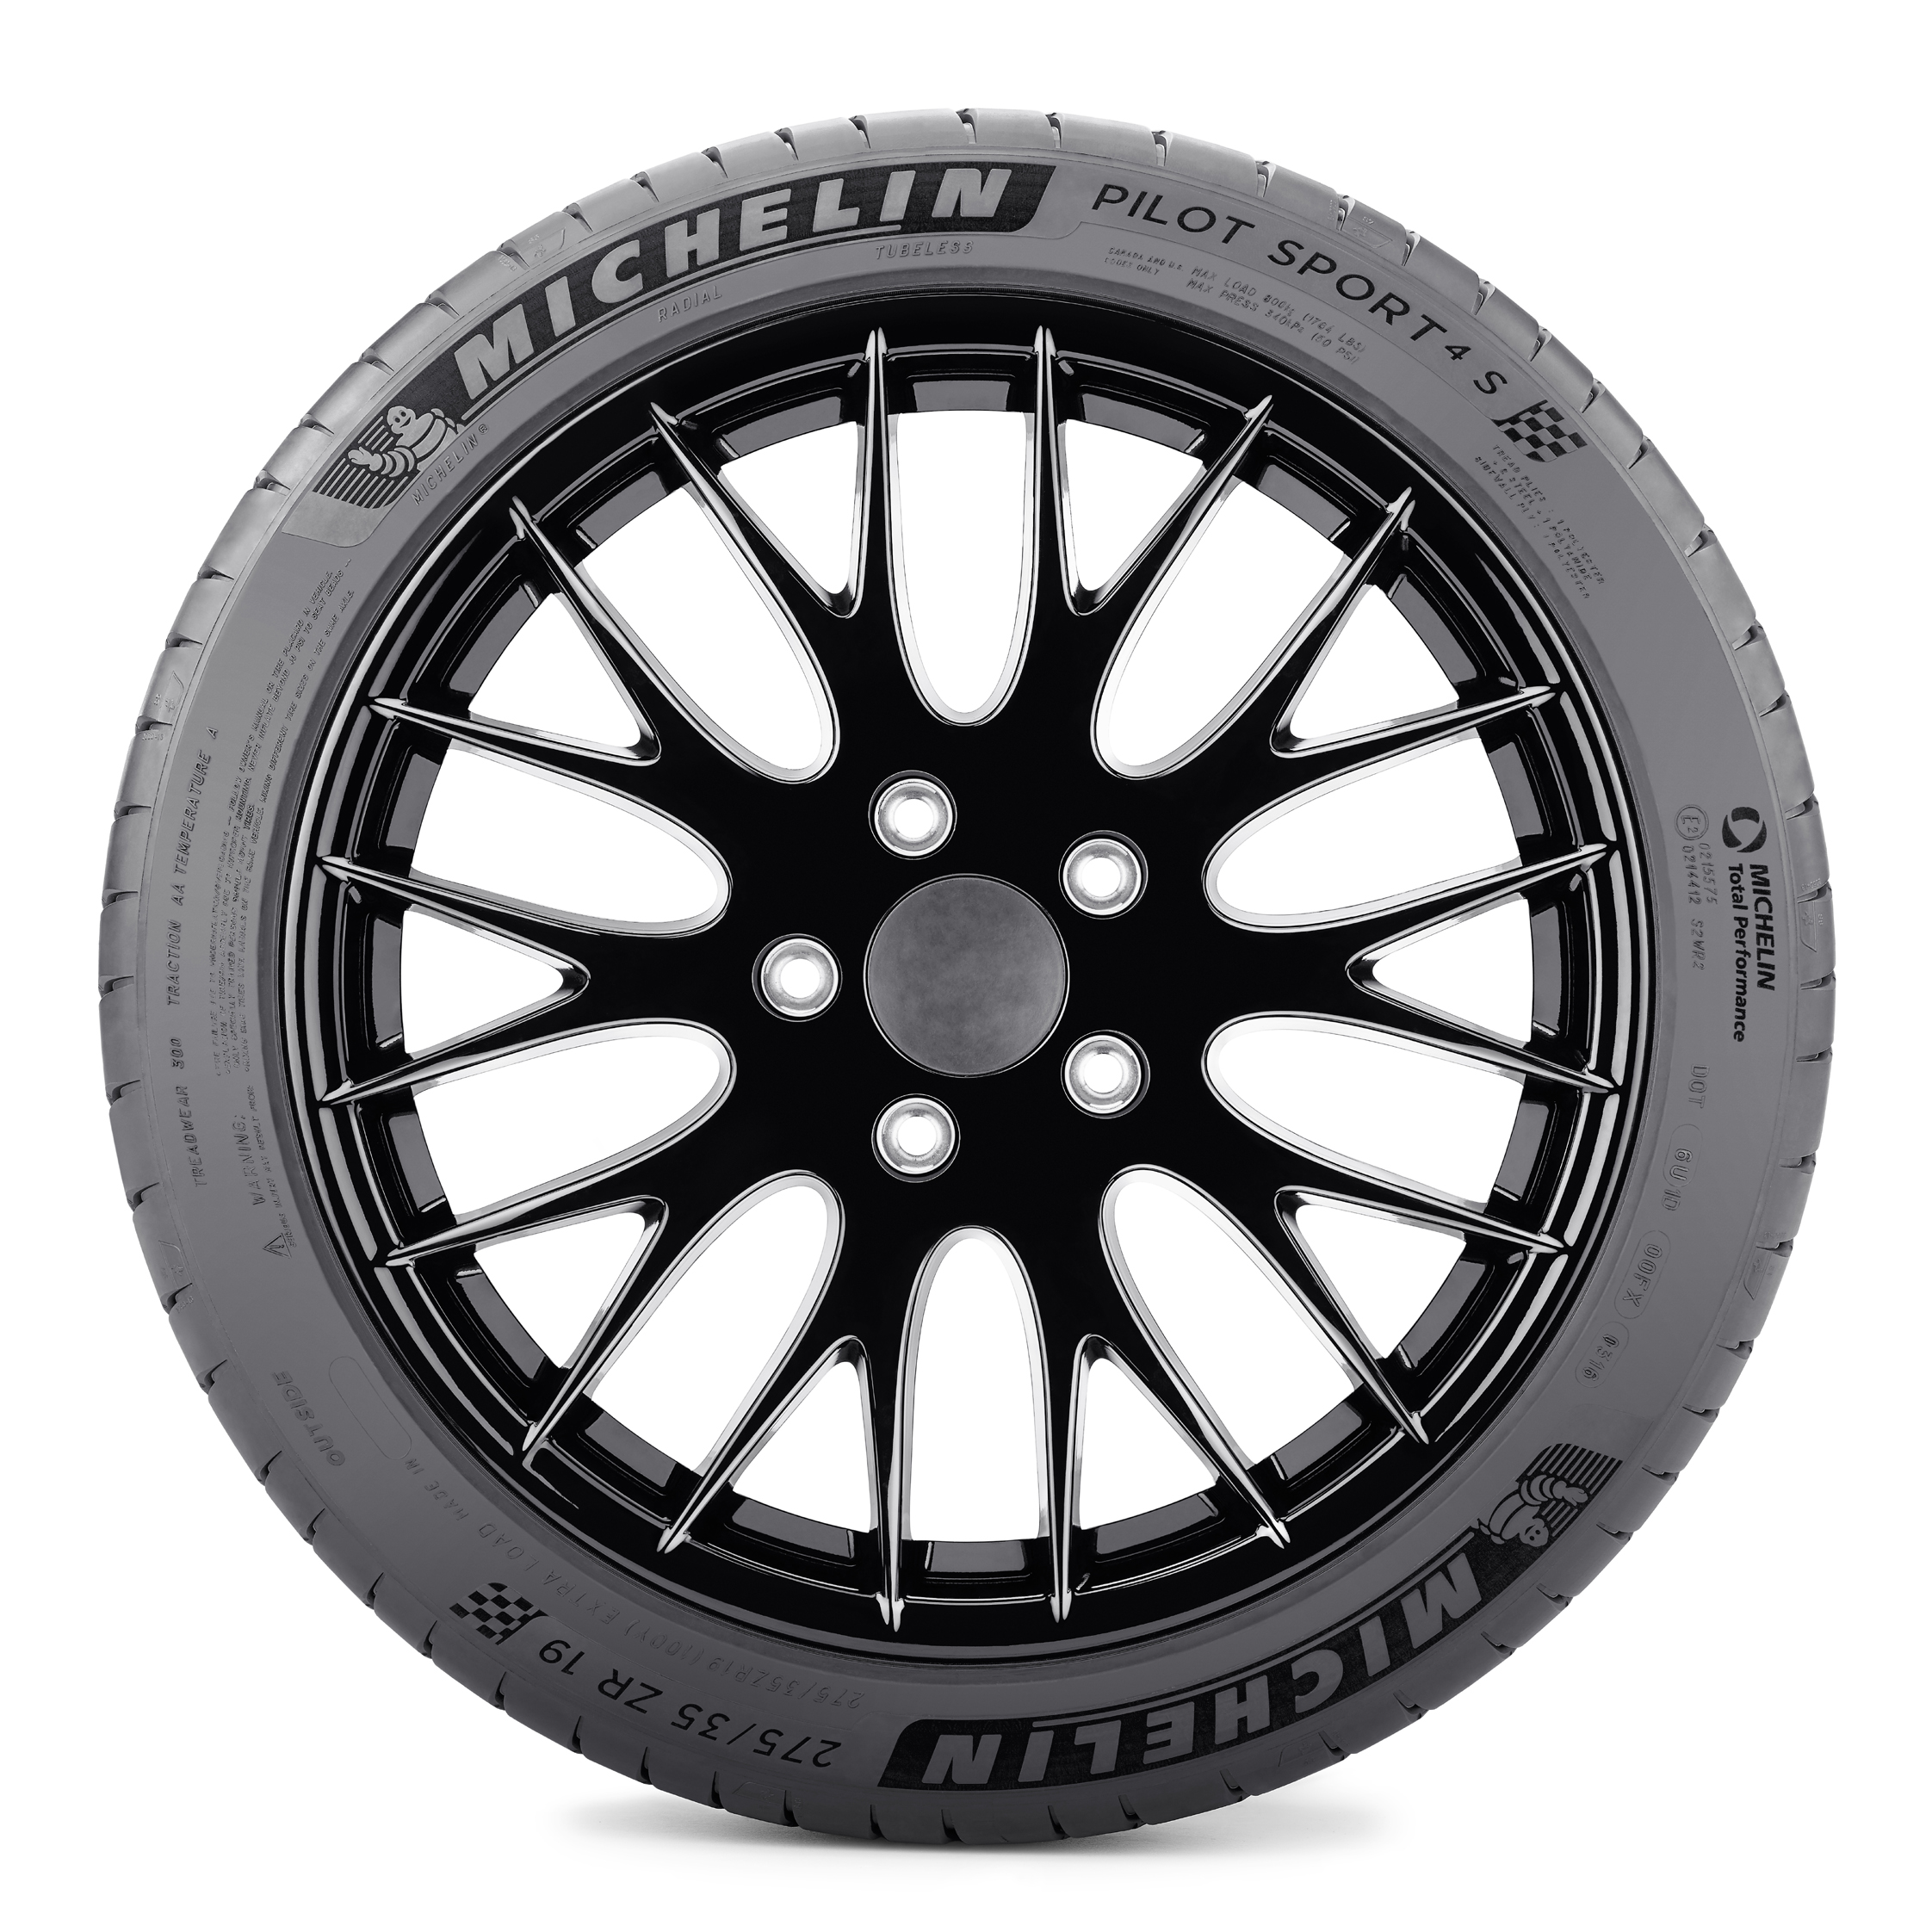 michelin pilot sport   der ultra high performance